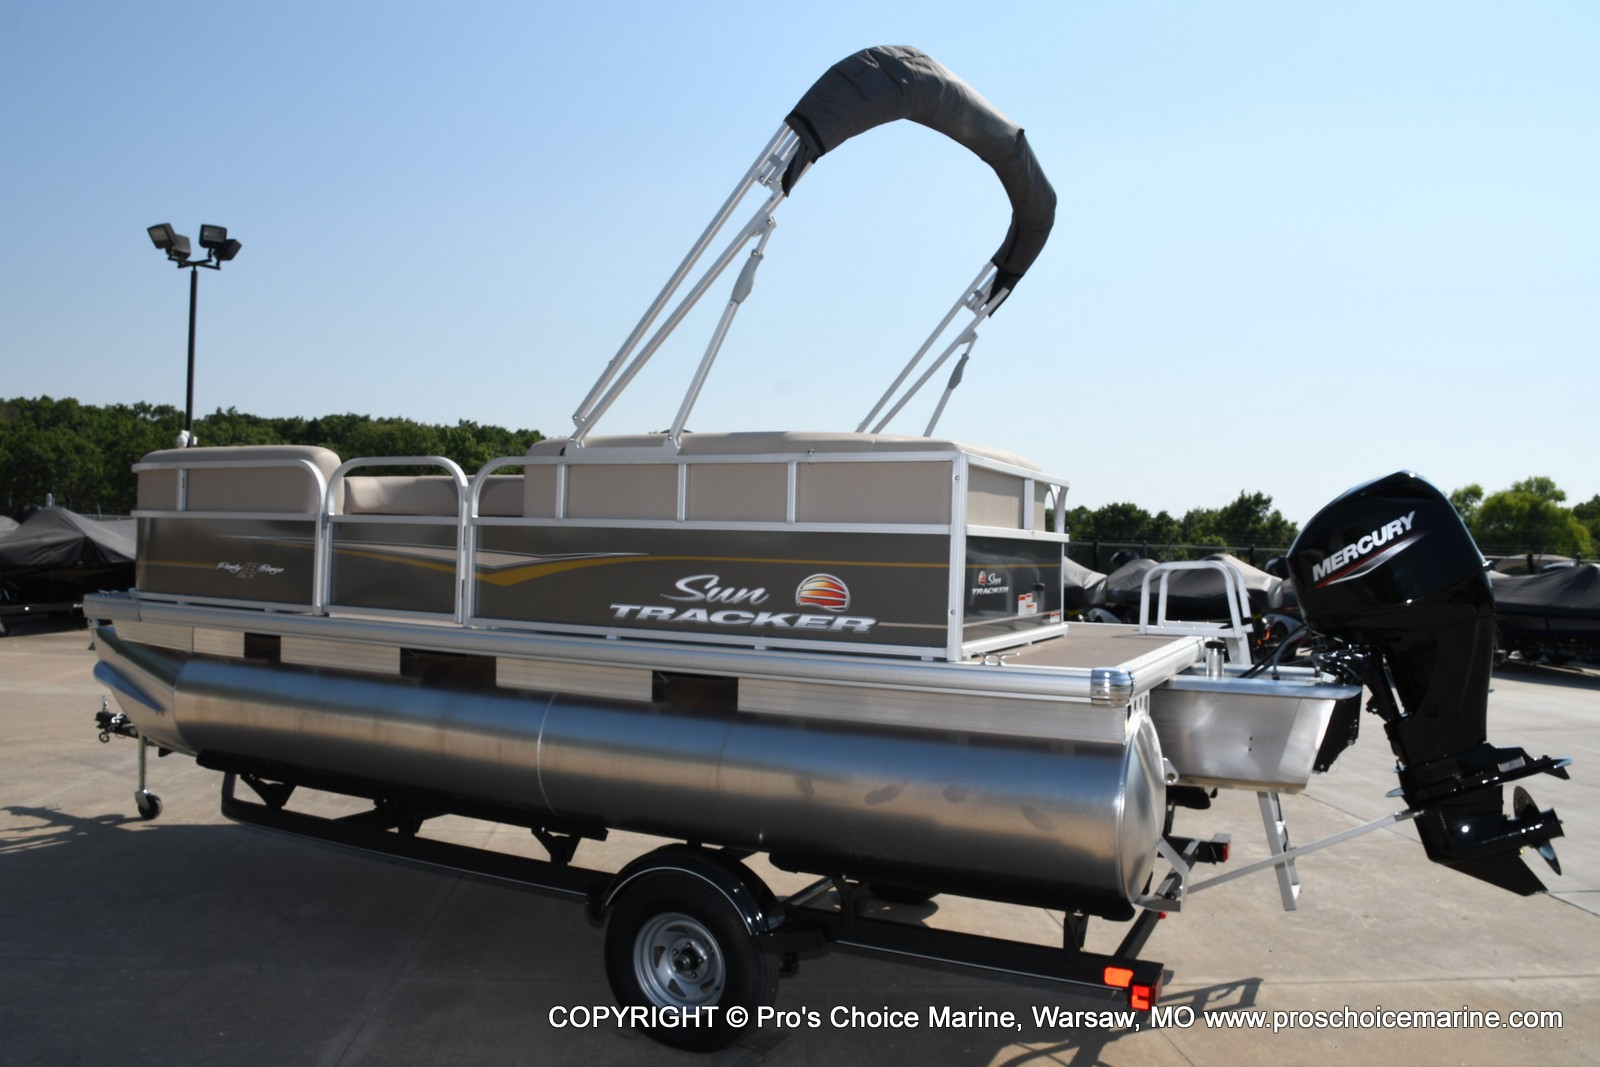 2021 Sun Tracker boat for sale, model of the boat is Party Barge 18 DLX & Image # 14 of 50